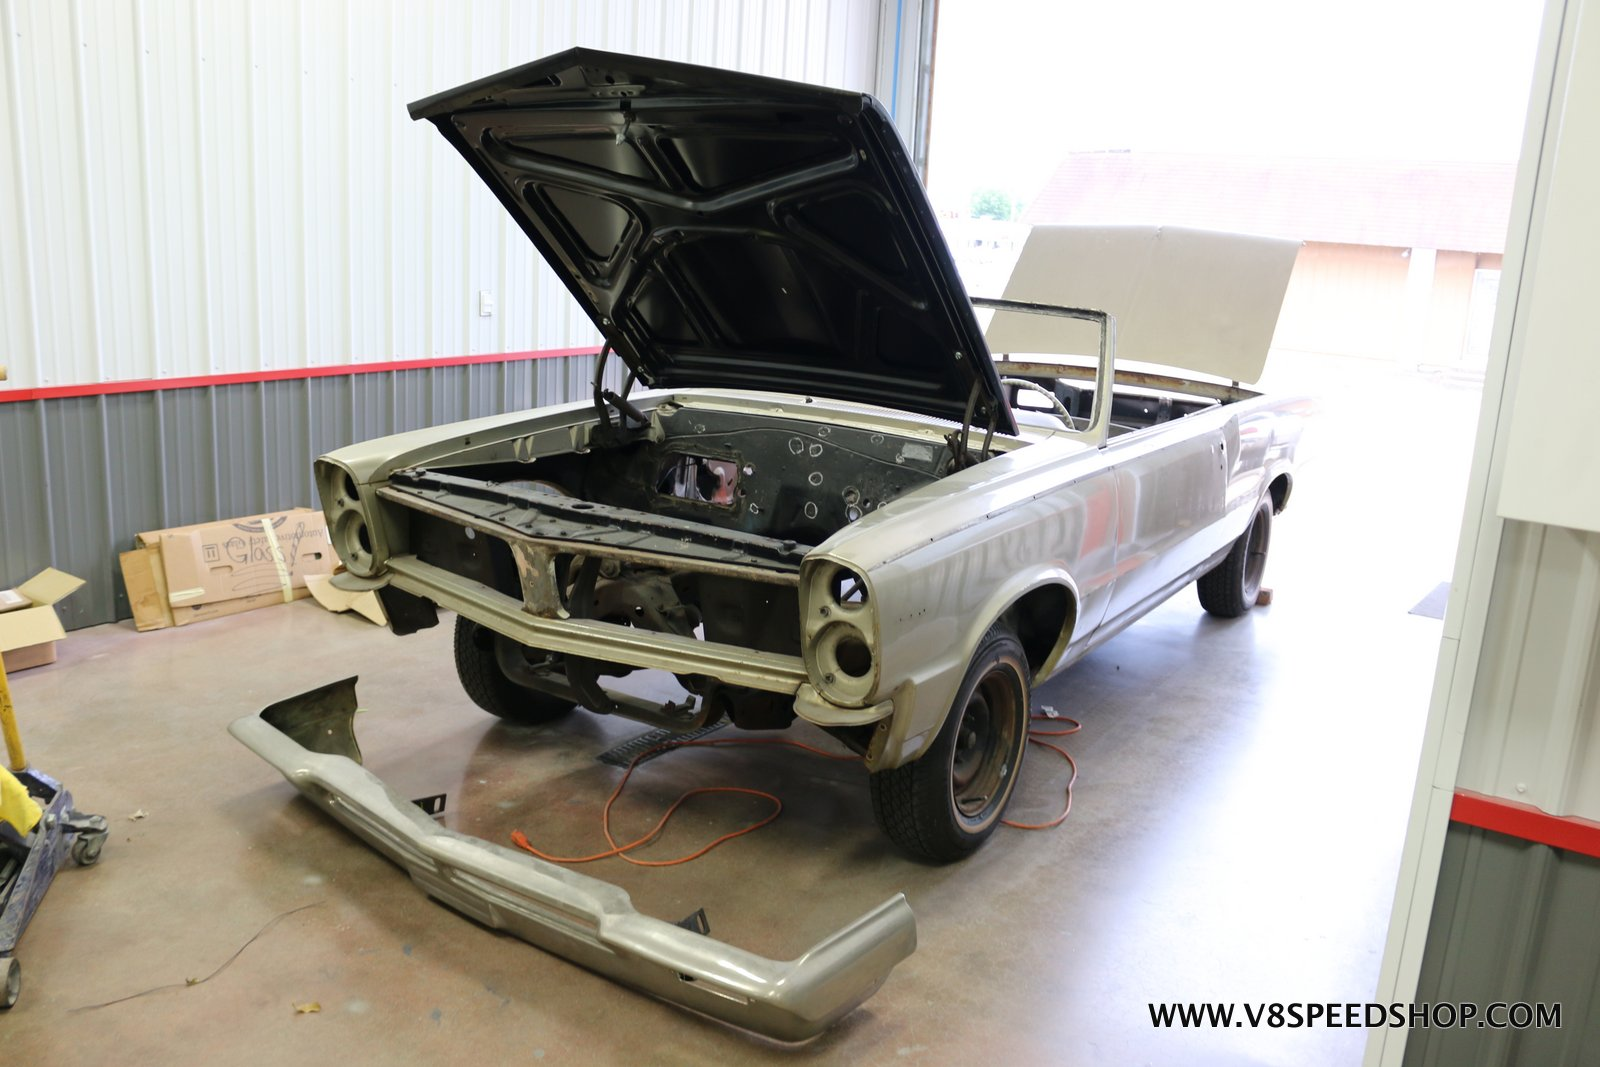 1965 Pontiac Tempest Convertible Sheet Metal Repairs at V8 Speed and Resto Shop Photo Gallery